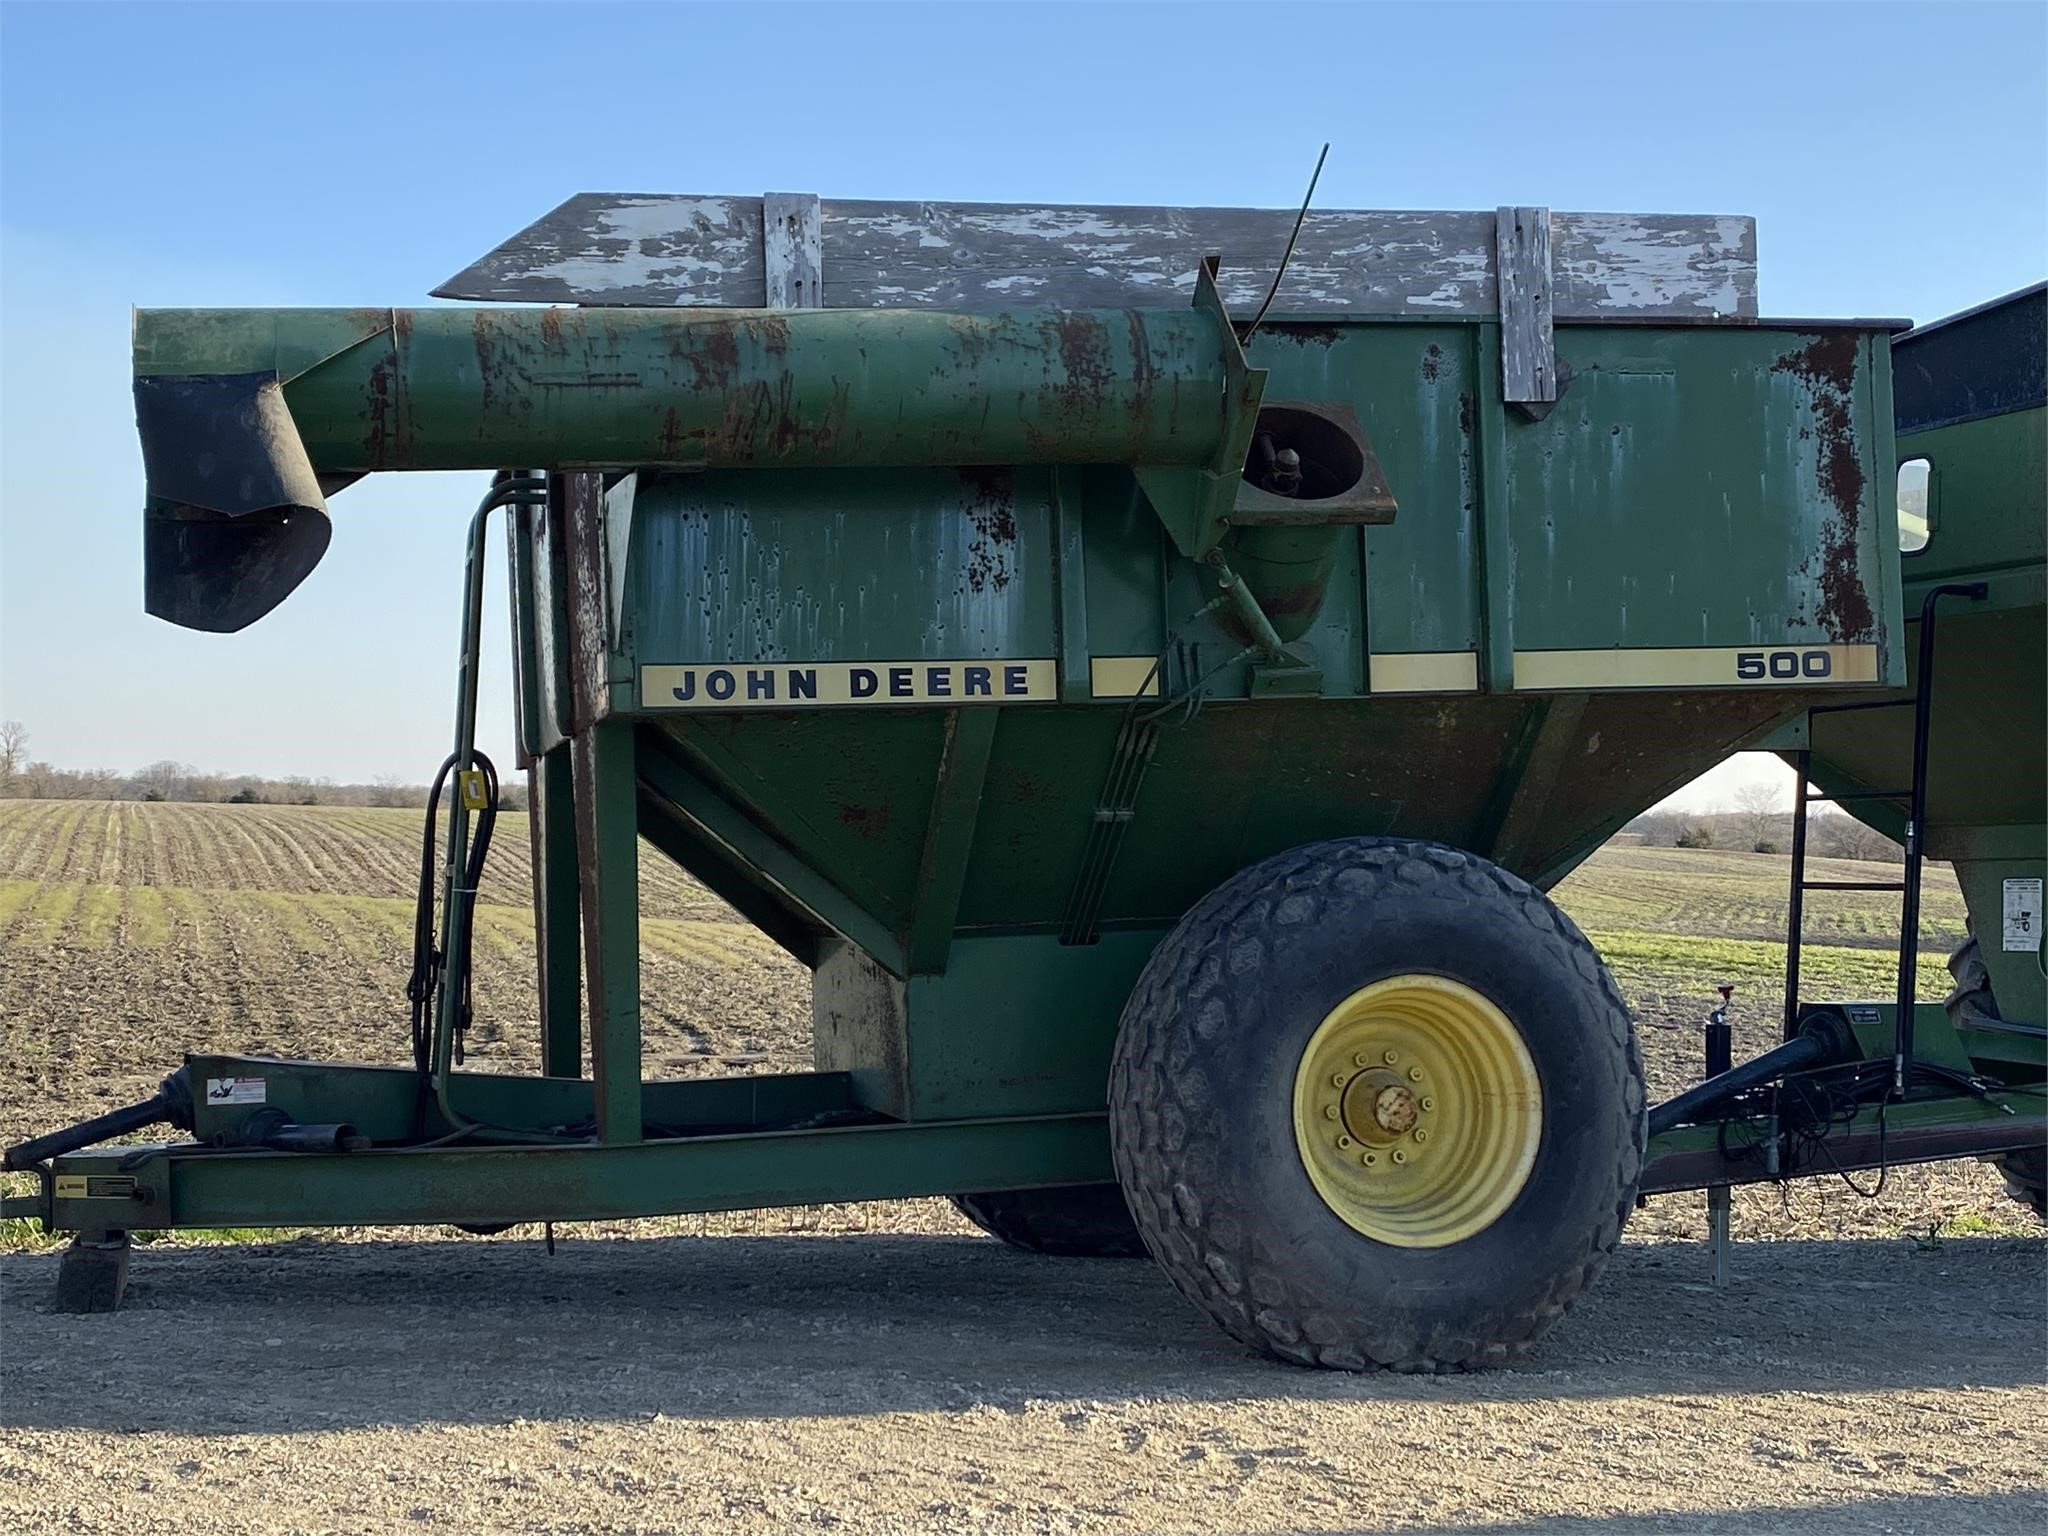 John Deere 500 Grain Cart